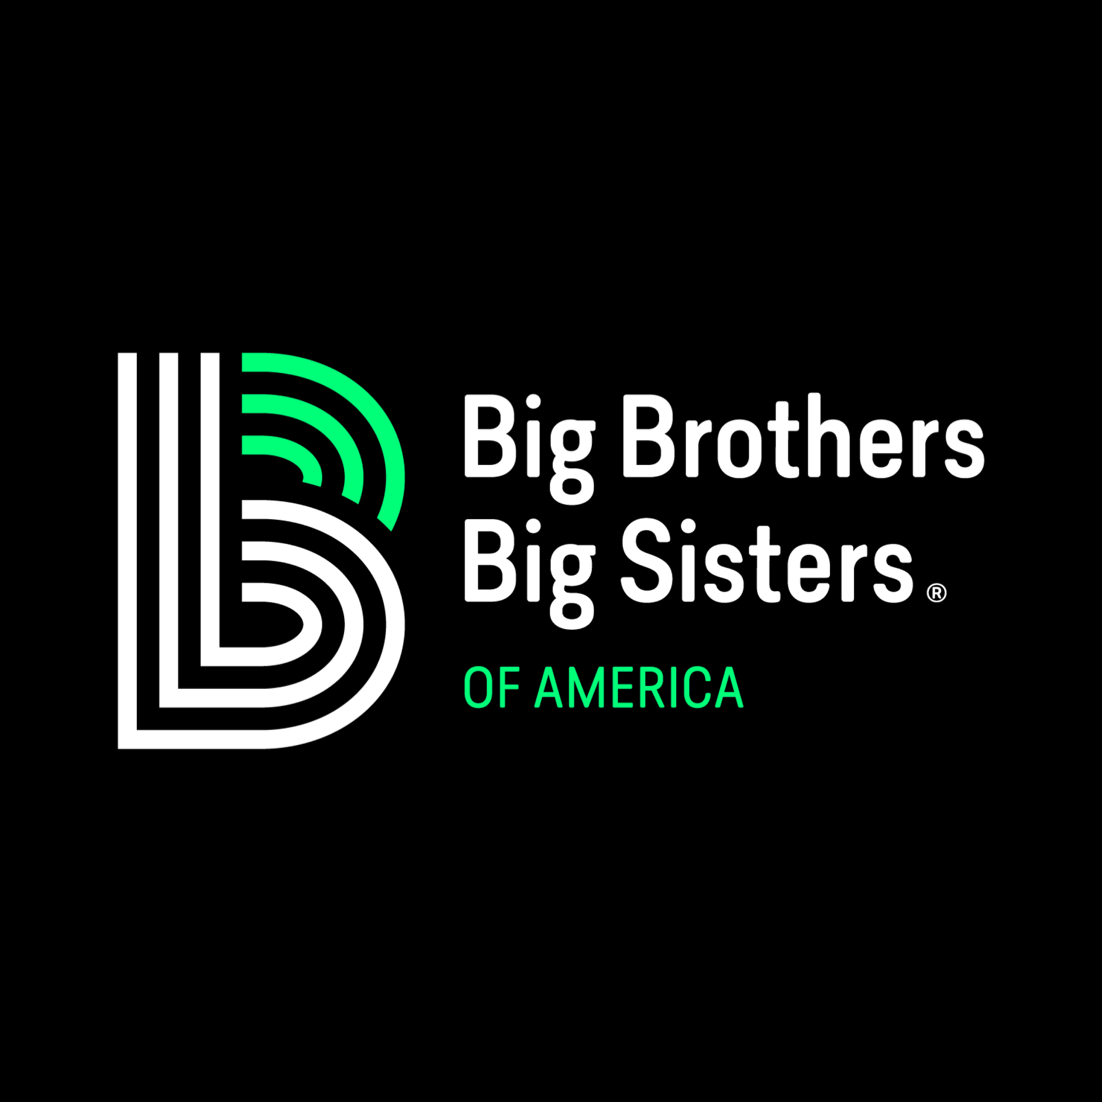 BBBS of America